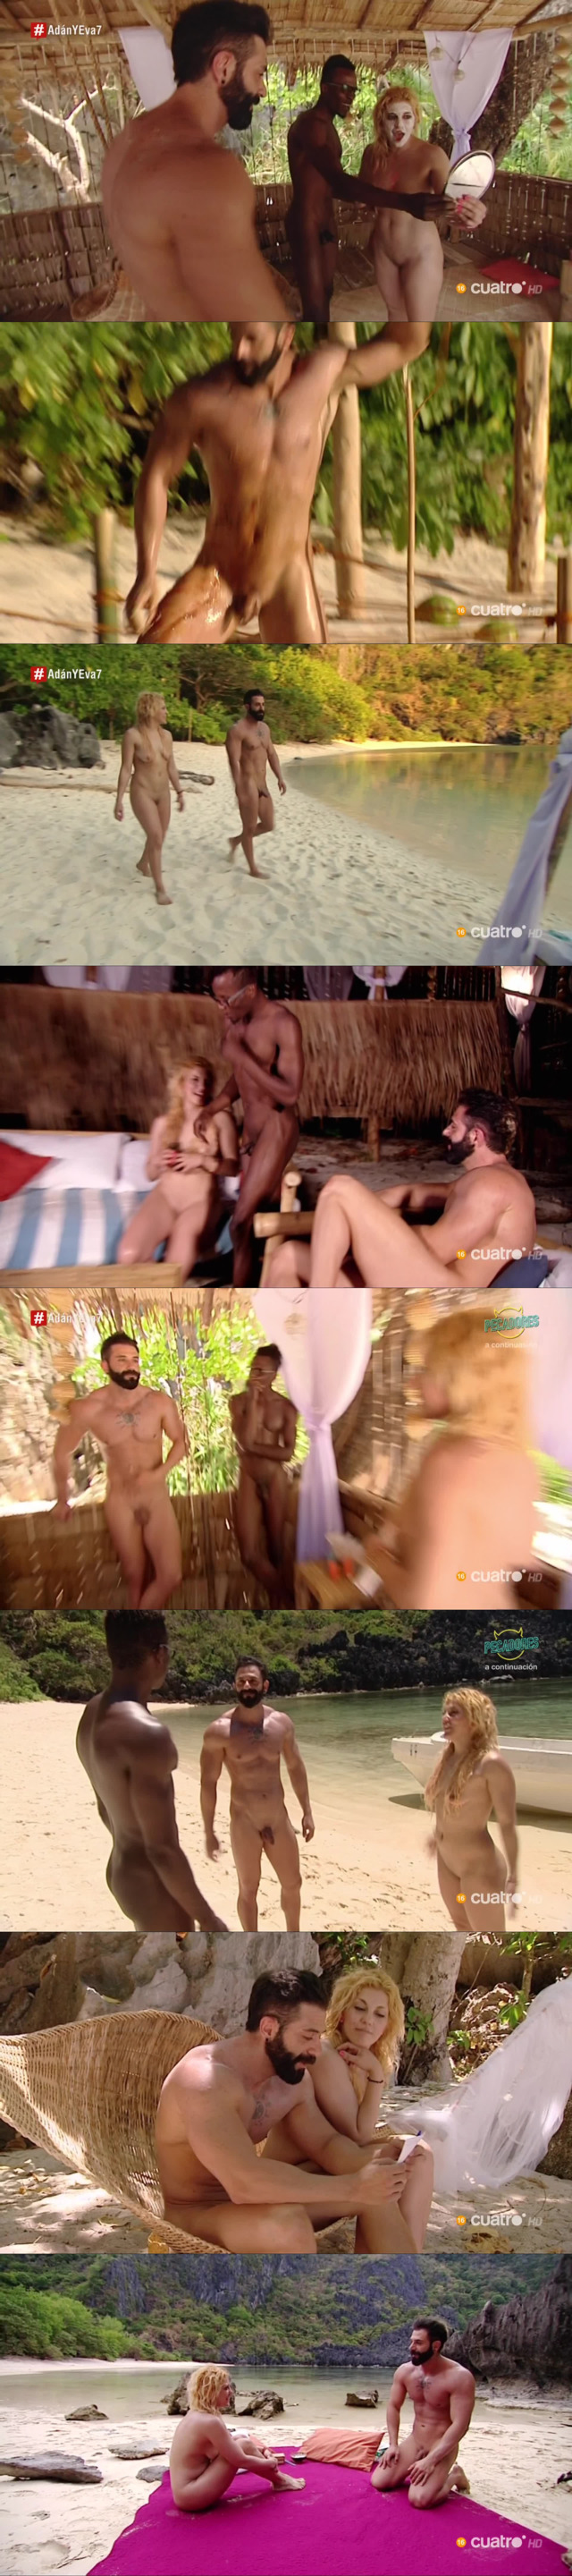 ricardo naked adam eve tv